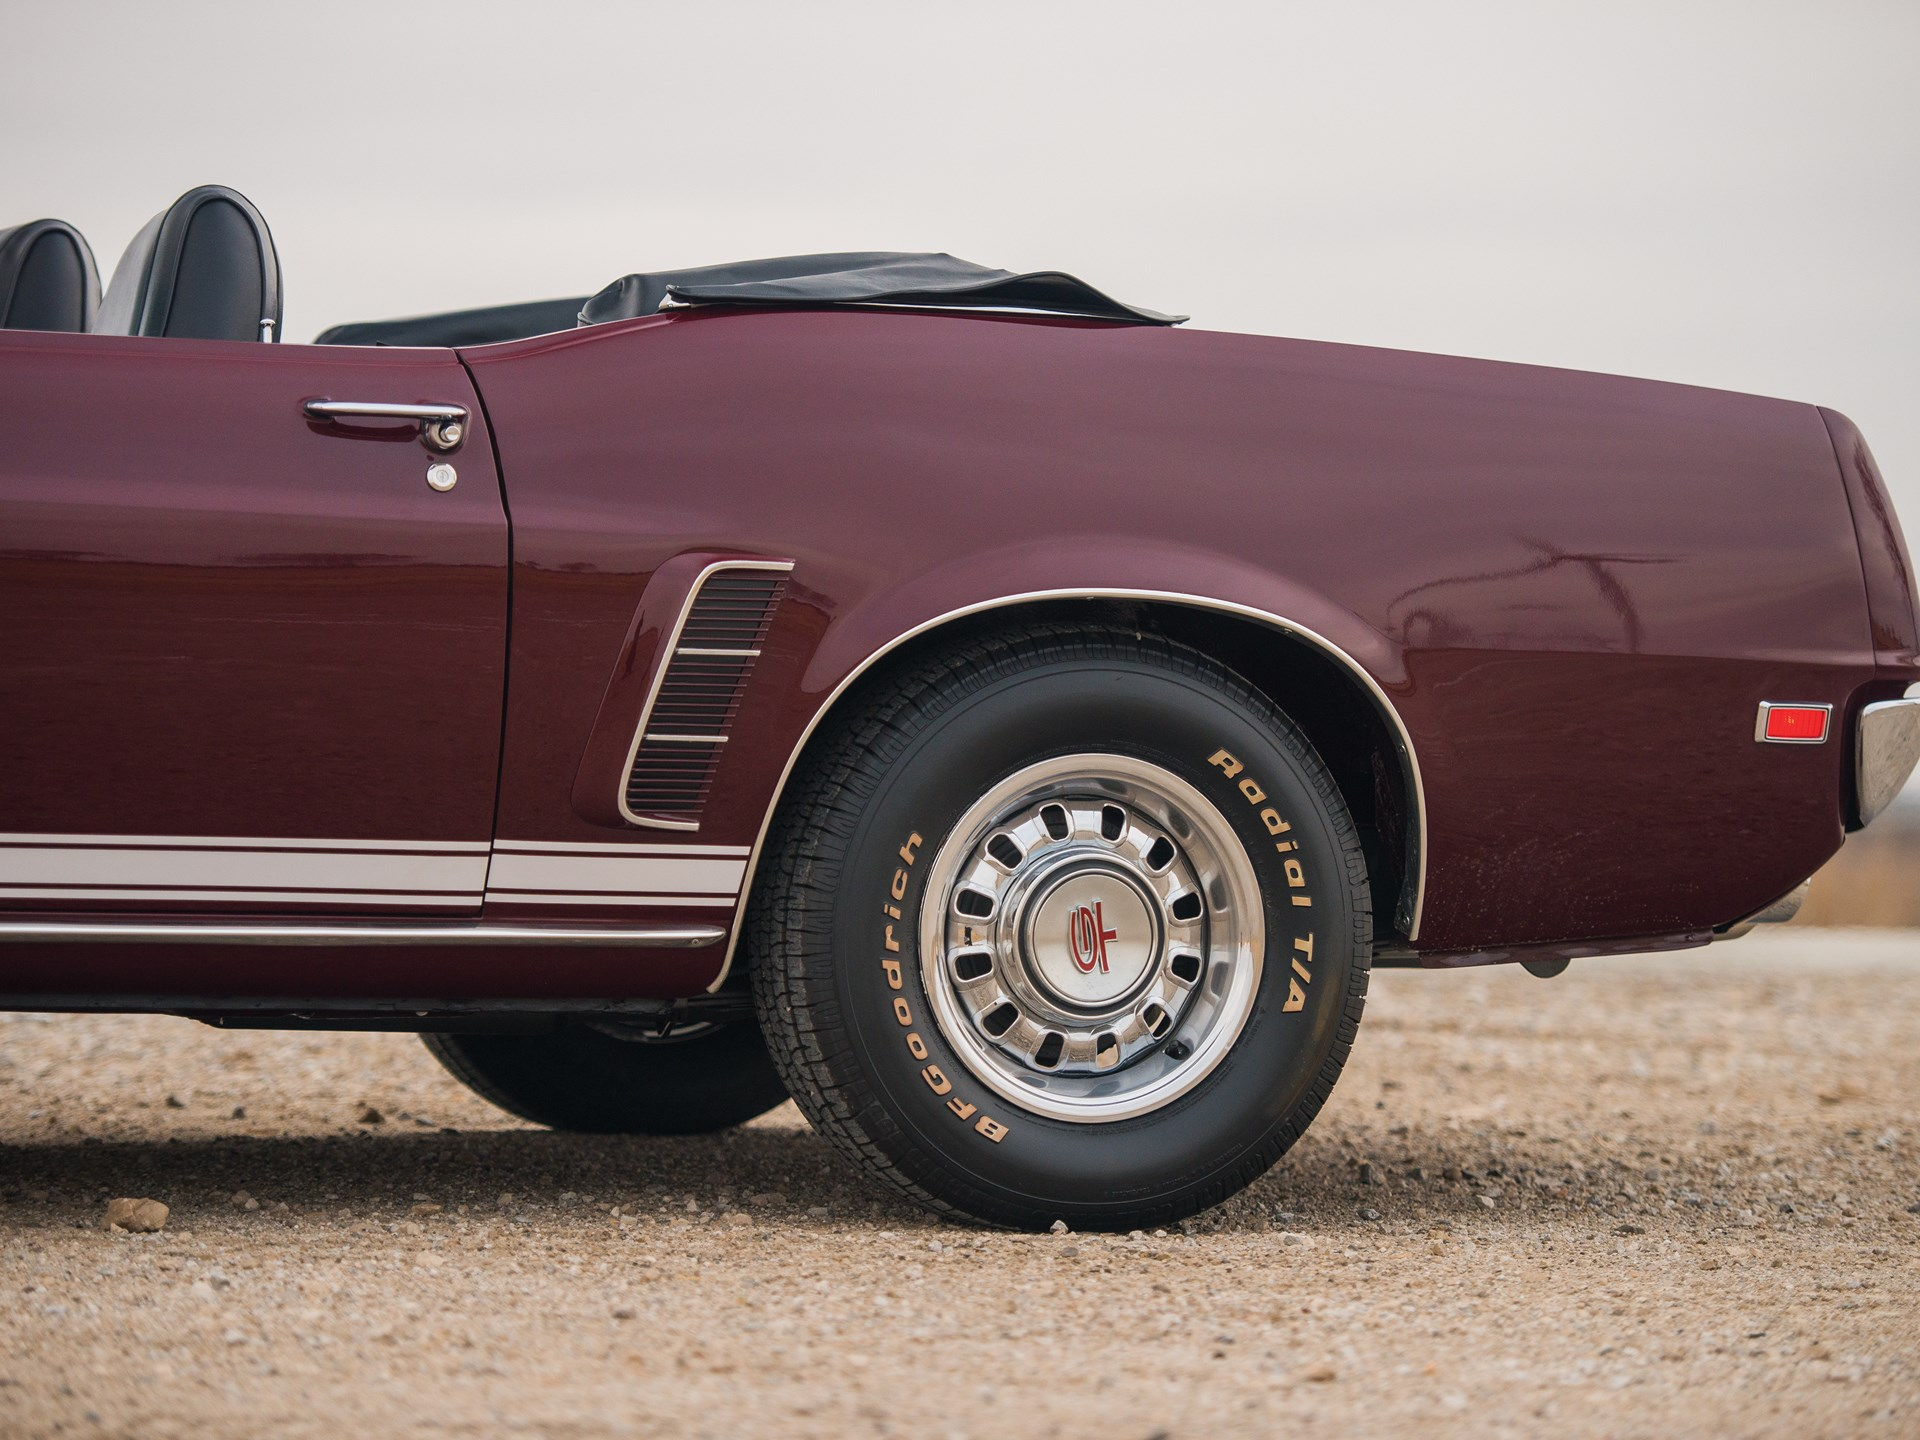 Mustang 69 Cobra Top Ford Mustang Mach Coupe Jpg With Mustang 69